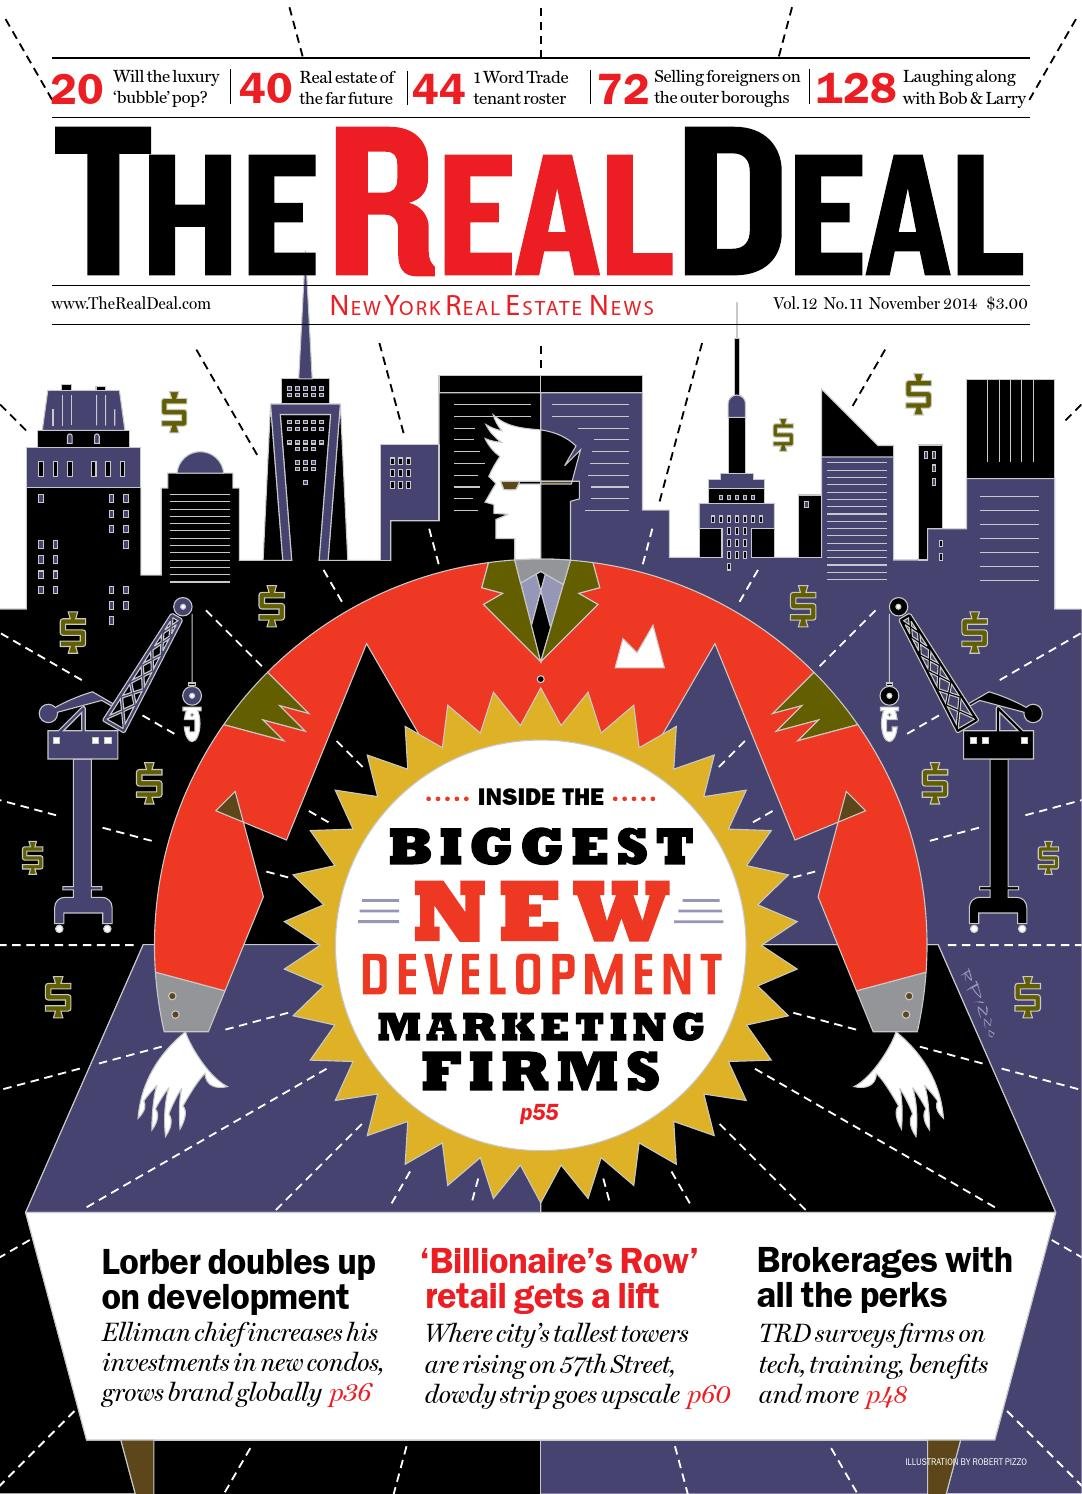 b65157822 The Real Deal November 2014 by The Real Deal - issuu